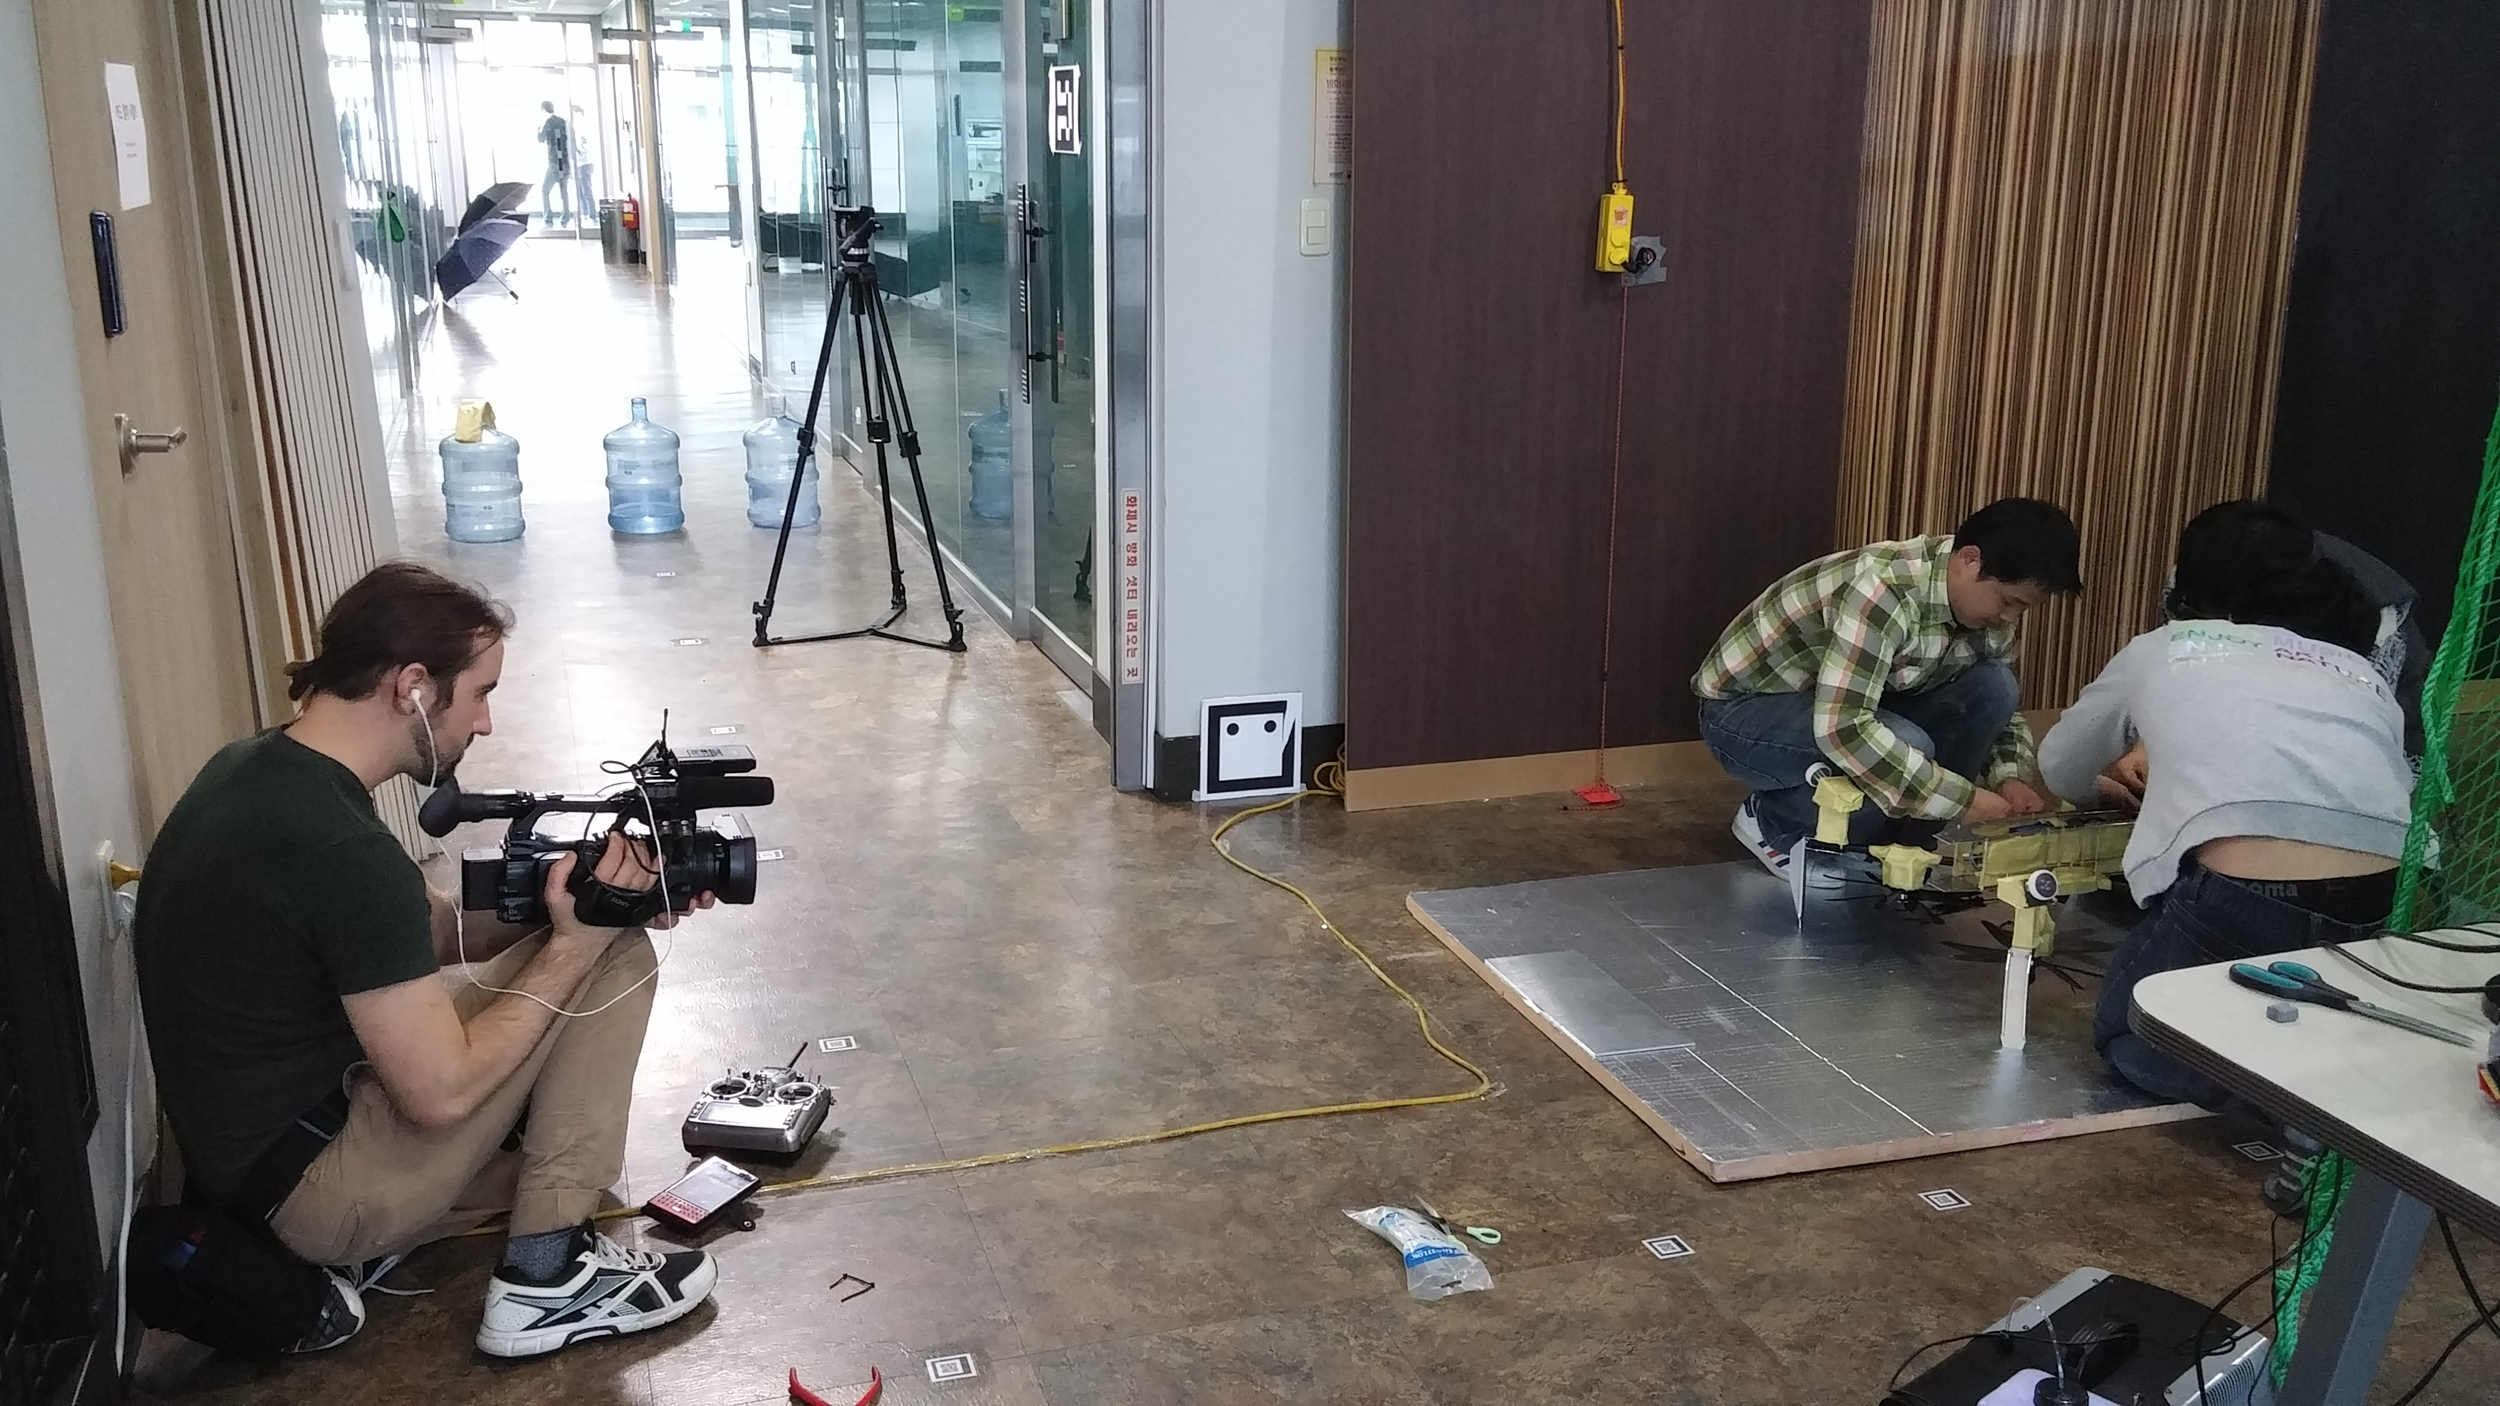 Filming the team at work on the drone